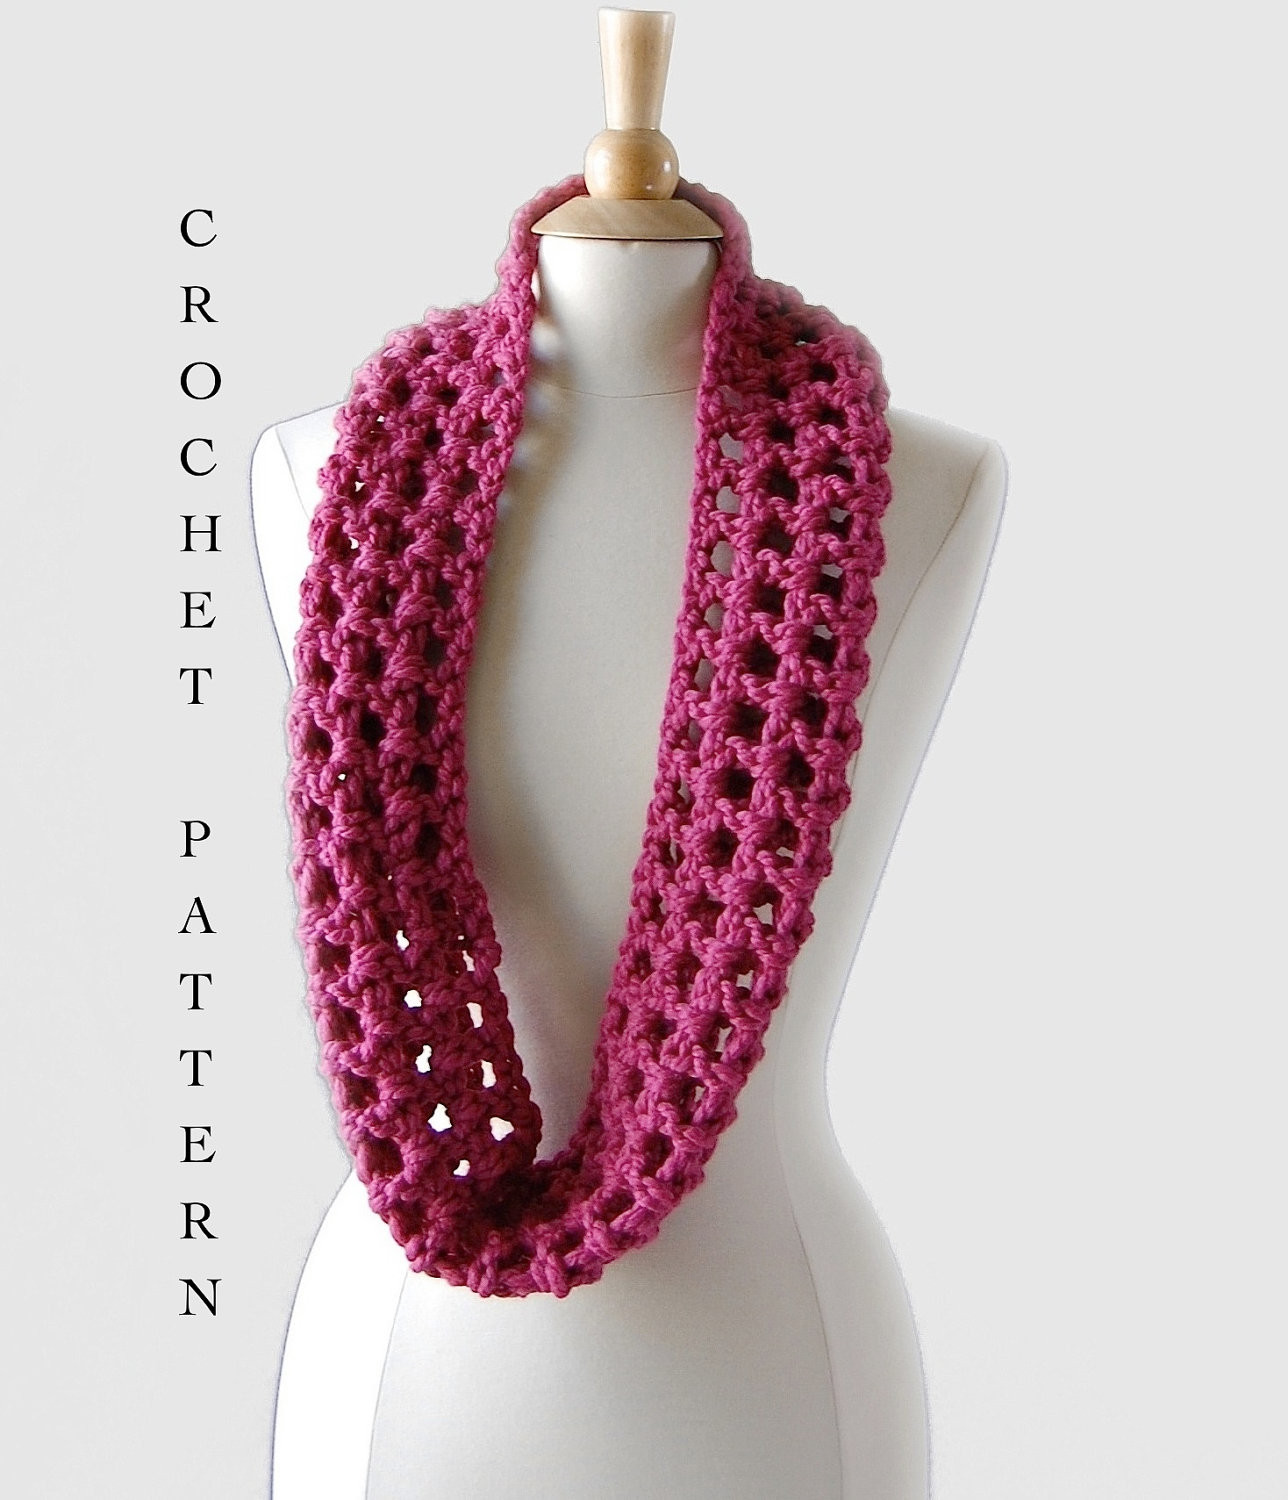 Quick and Easy Crochet New Quick and Easy Crochet Scarf Pattern Of Incredible 48 Pics Quick and Easy Crochet